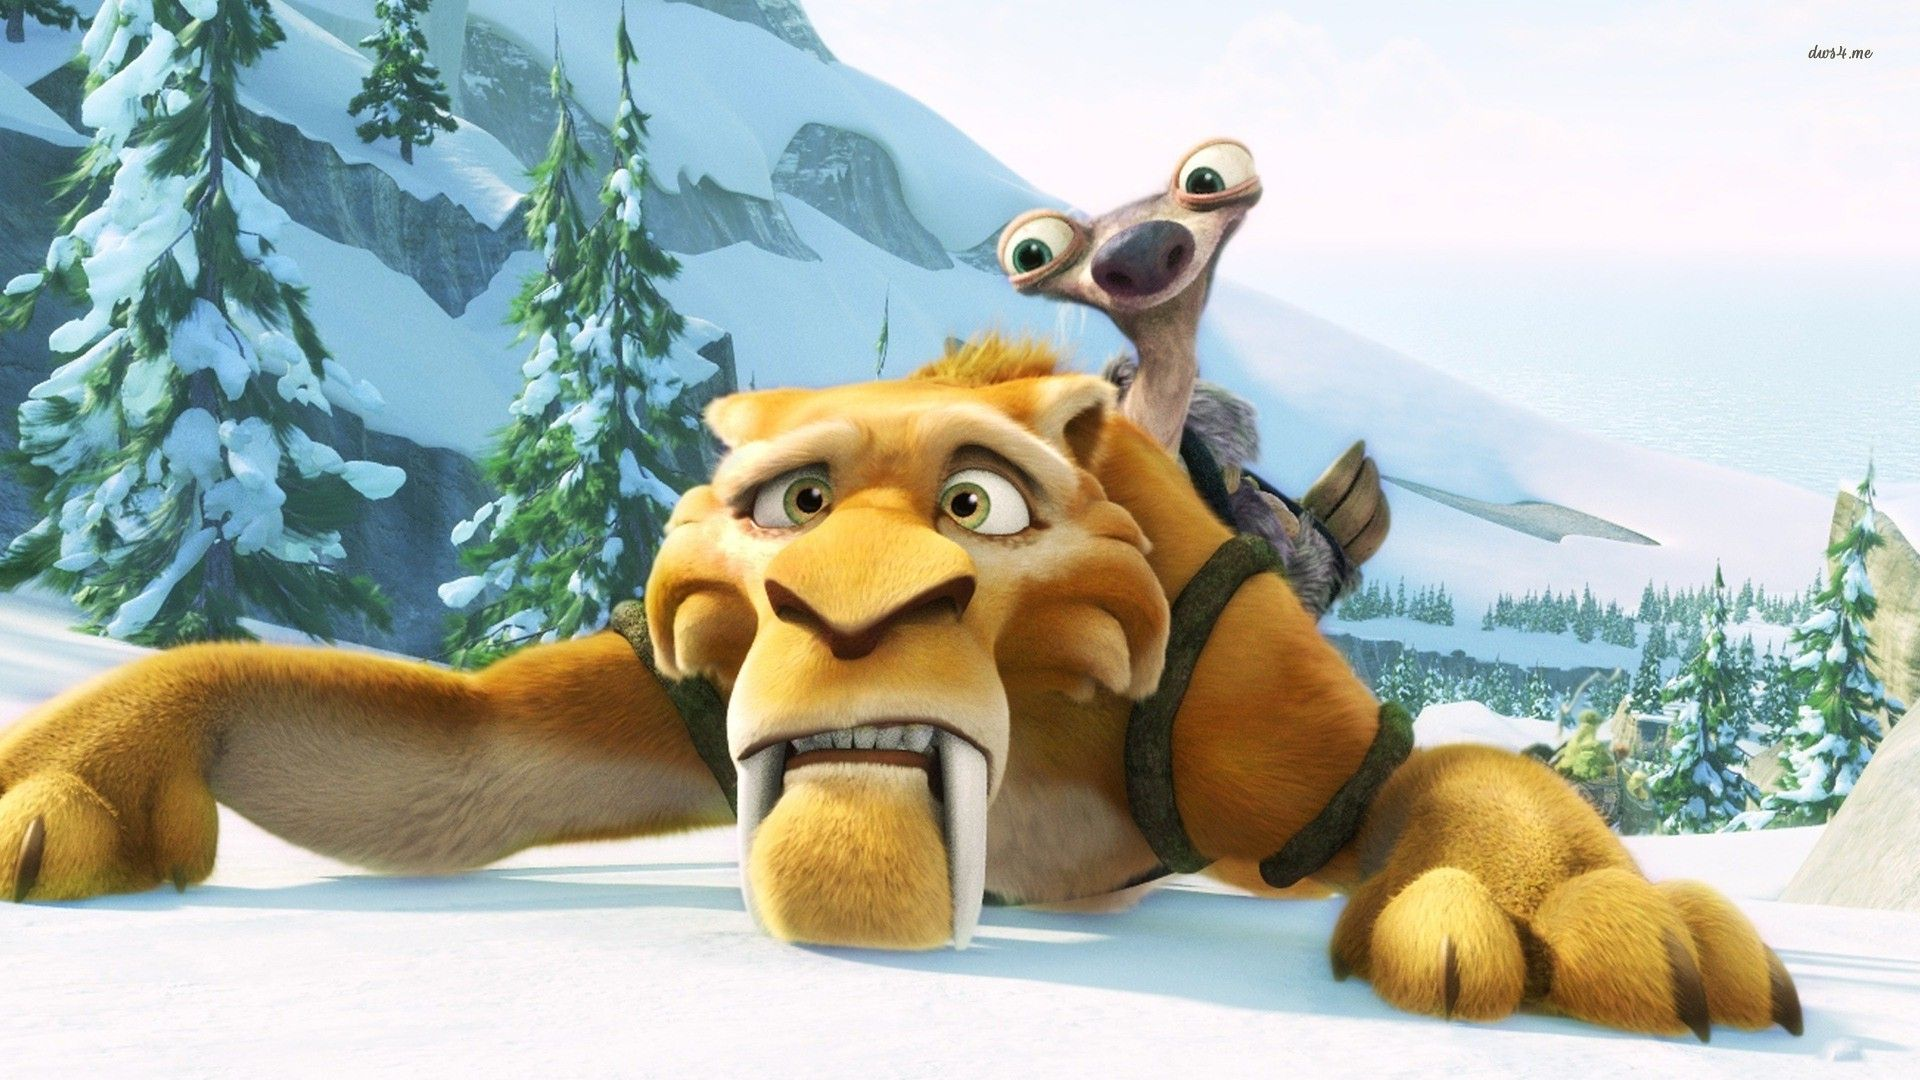 sid and diego ice age 4 continental drift wallpaper hd free download